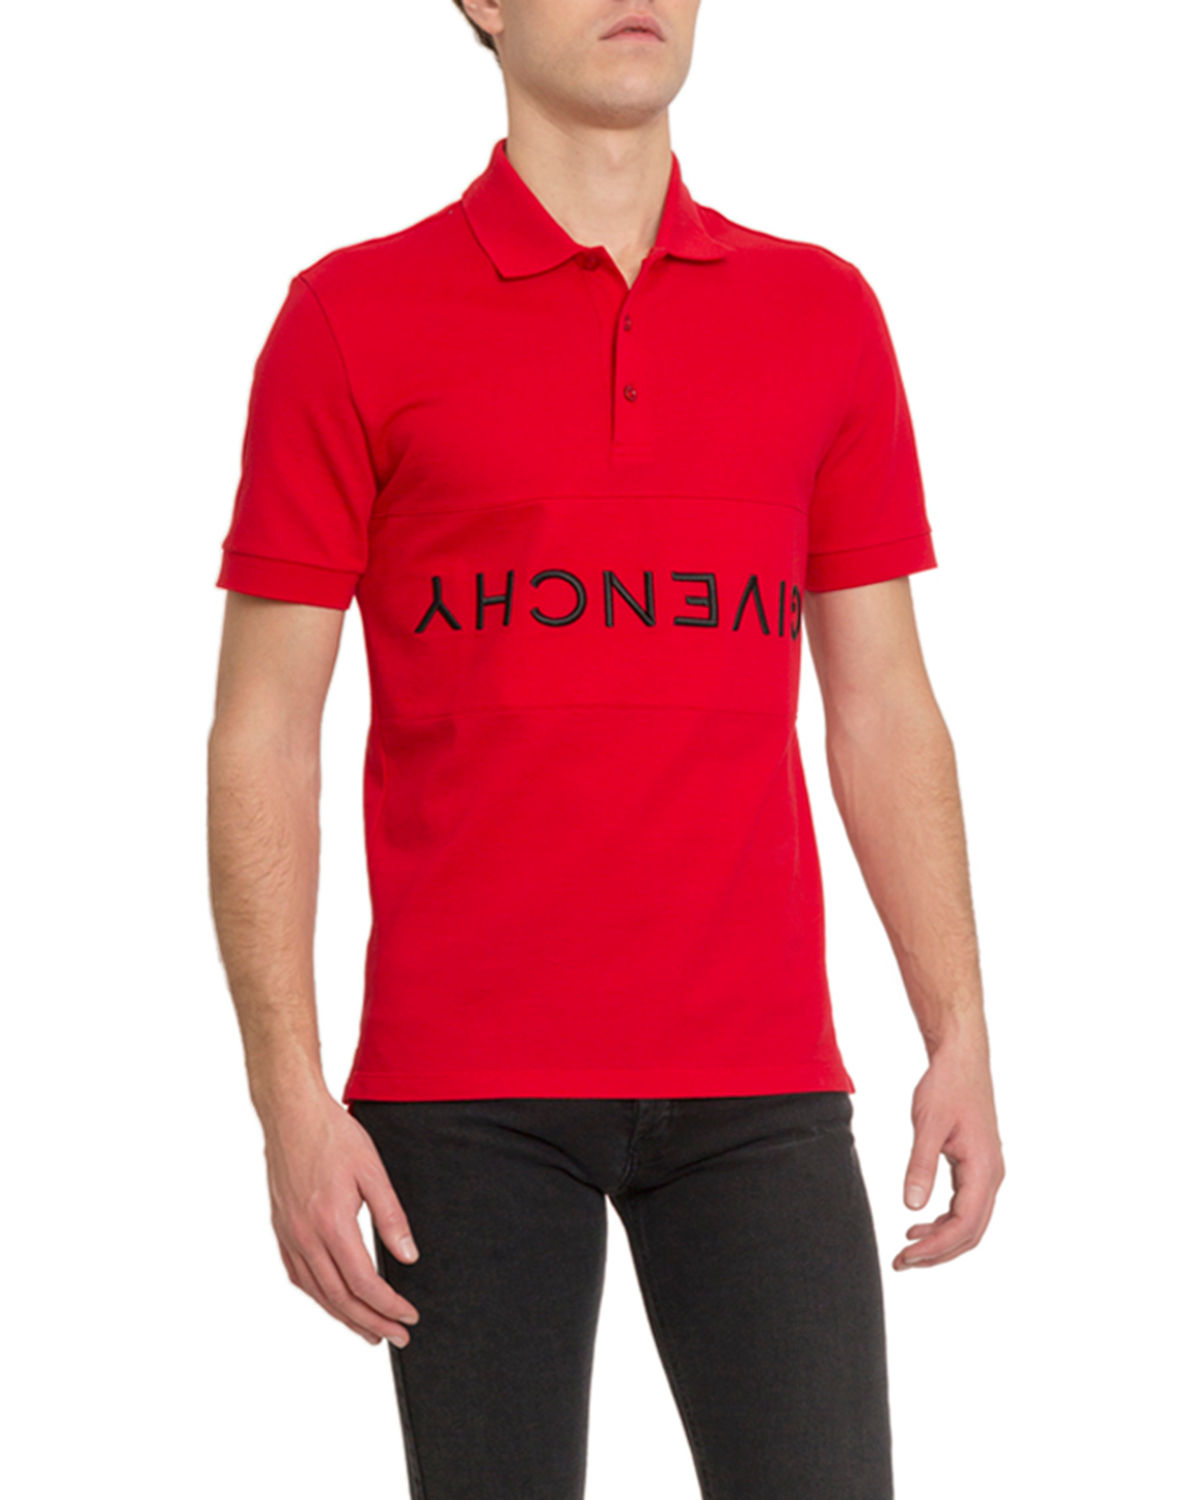 new arrival 03bf2 f17c8 Men's Slim Fit Polo Shirt